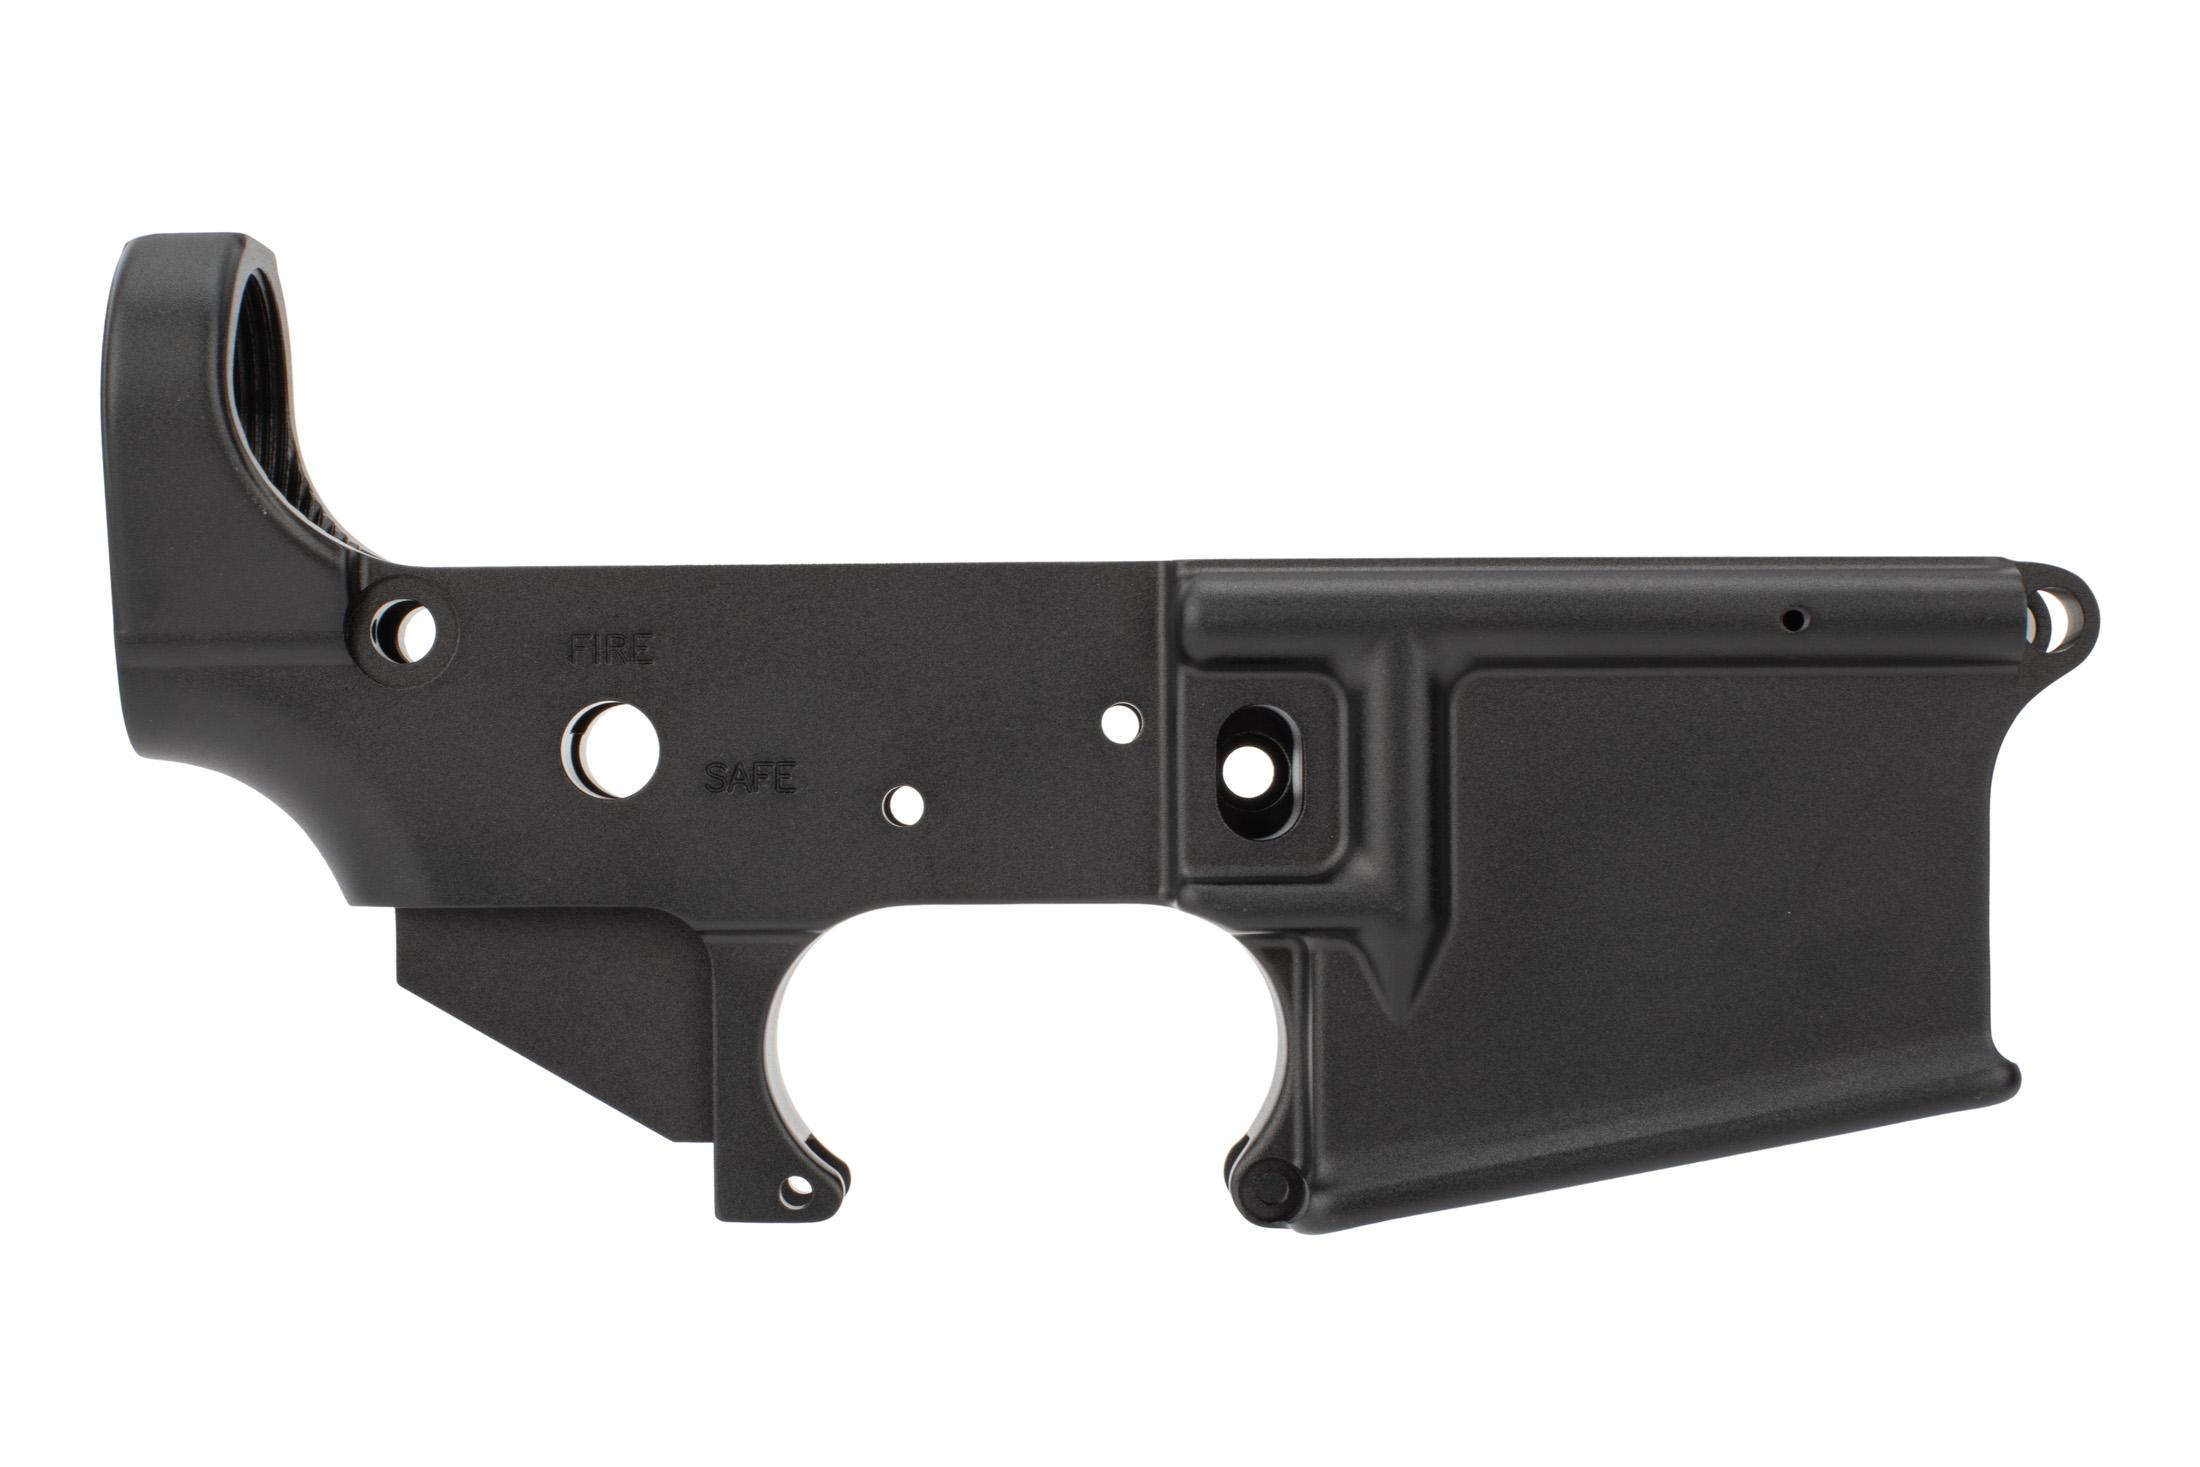 Mega Arms Forged AR15 lower receiver features a mil-spec anodized finish